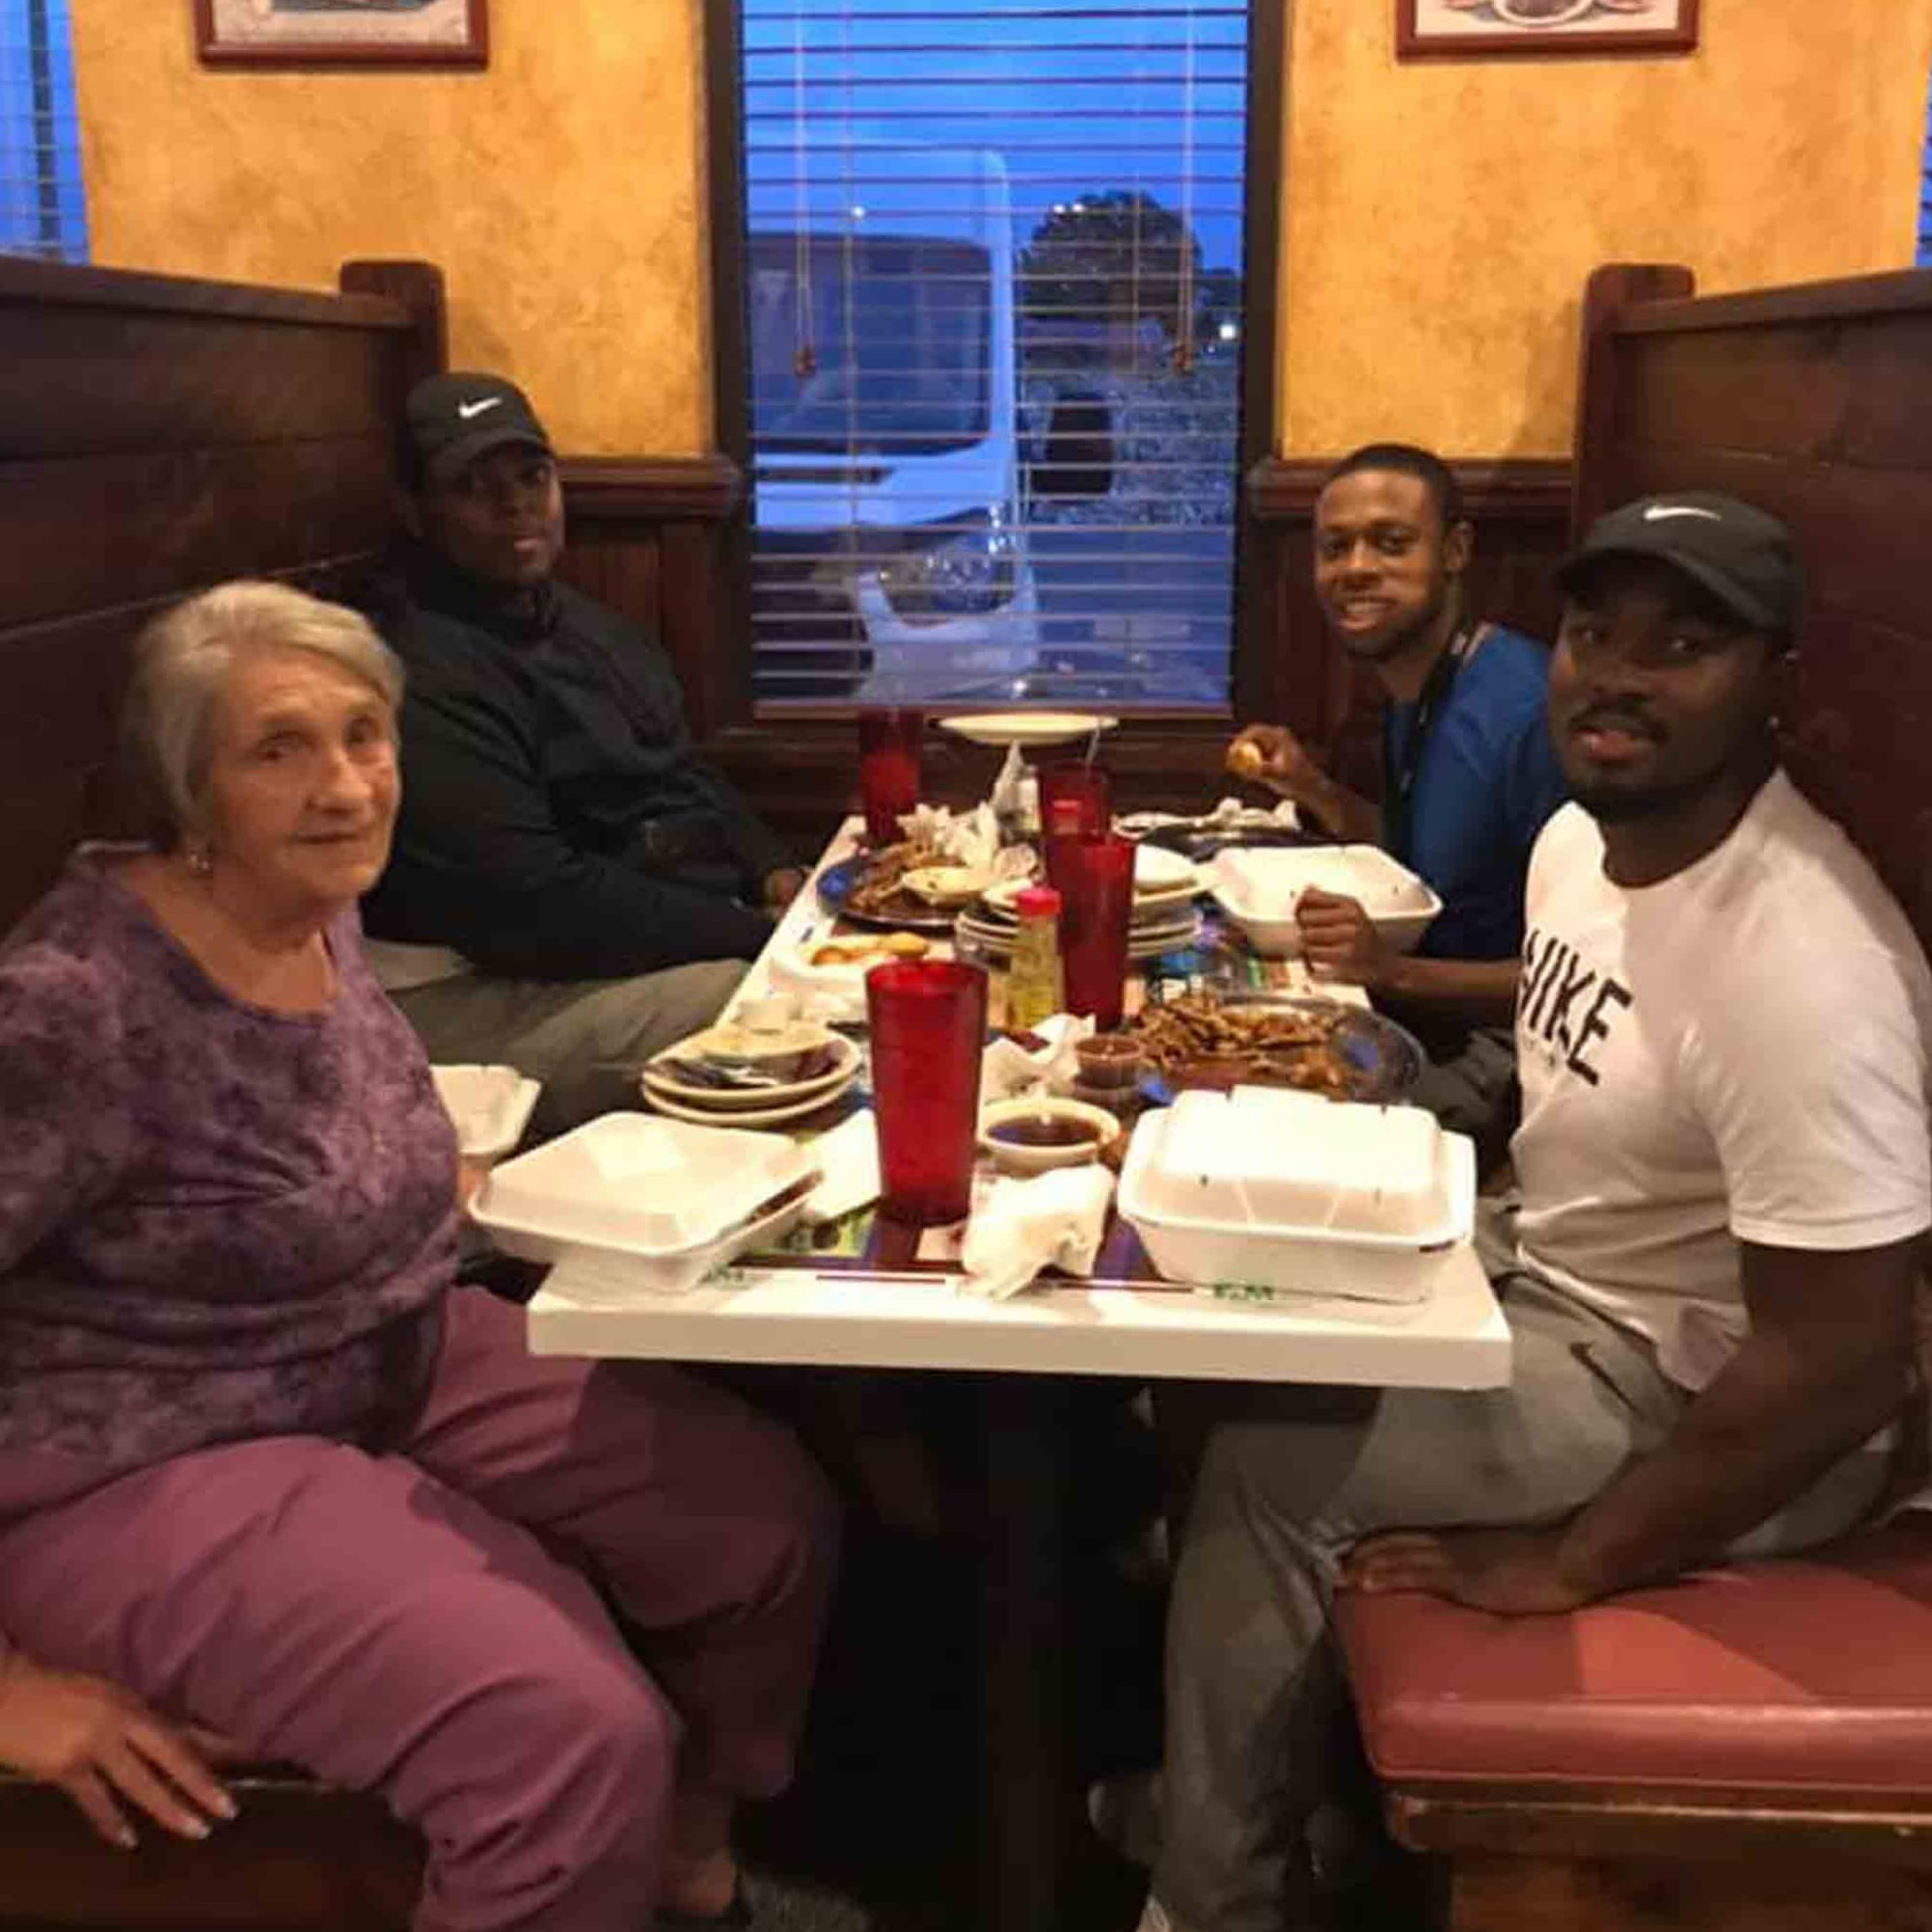 Man Approaches Elderly Woman Eating Alone | POPSUGAR UK Parenting